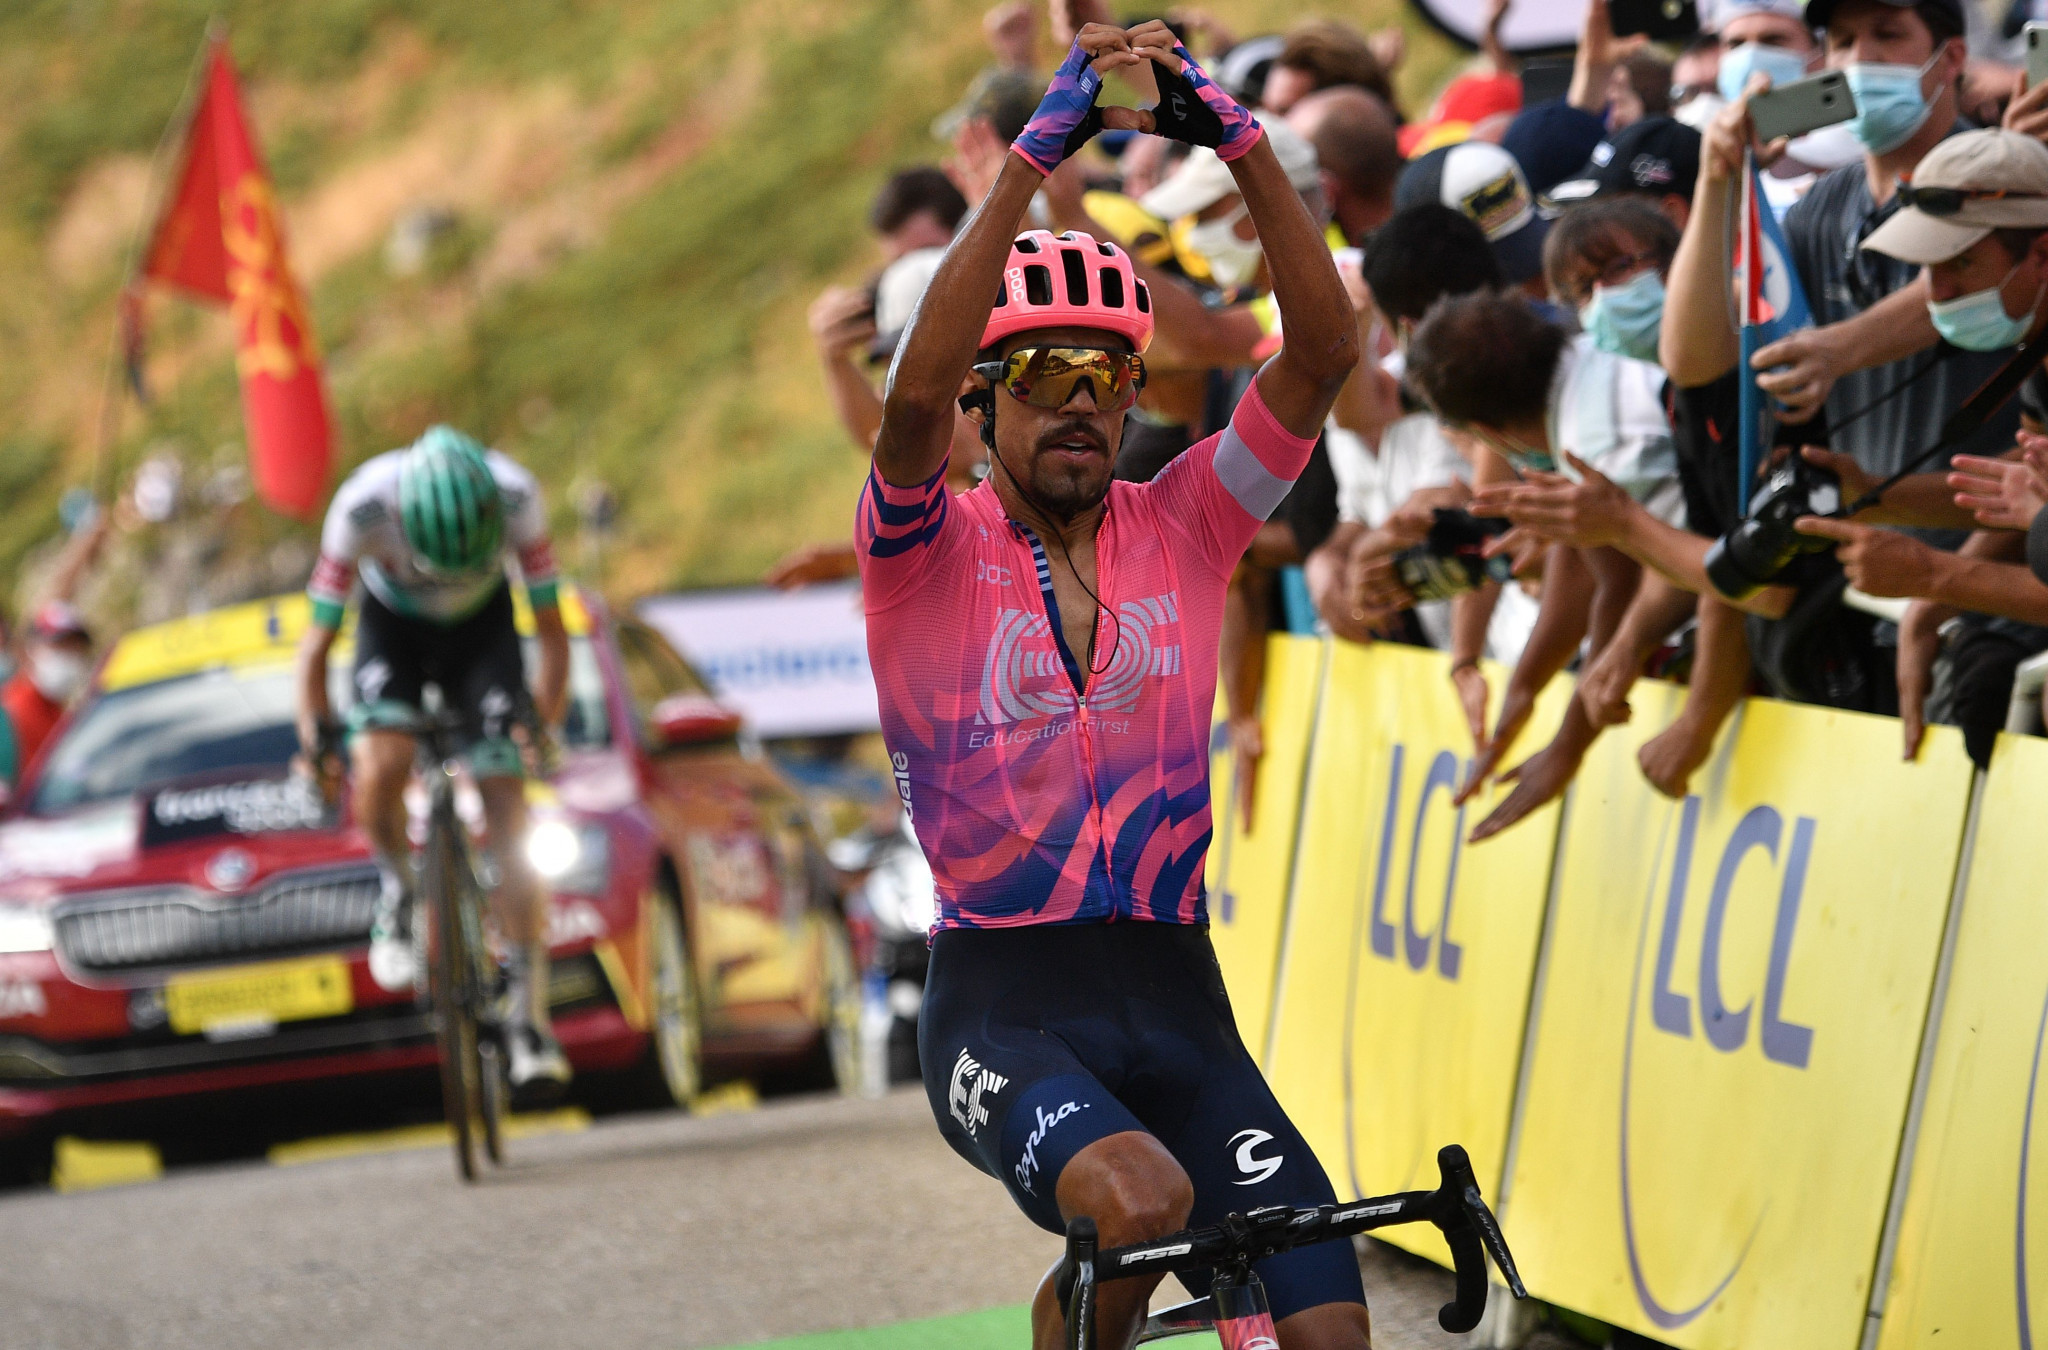 Dani Martinez clinched a maiden Tour de France stage win ©Getty Images